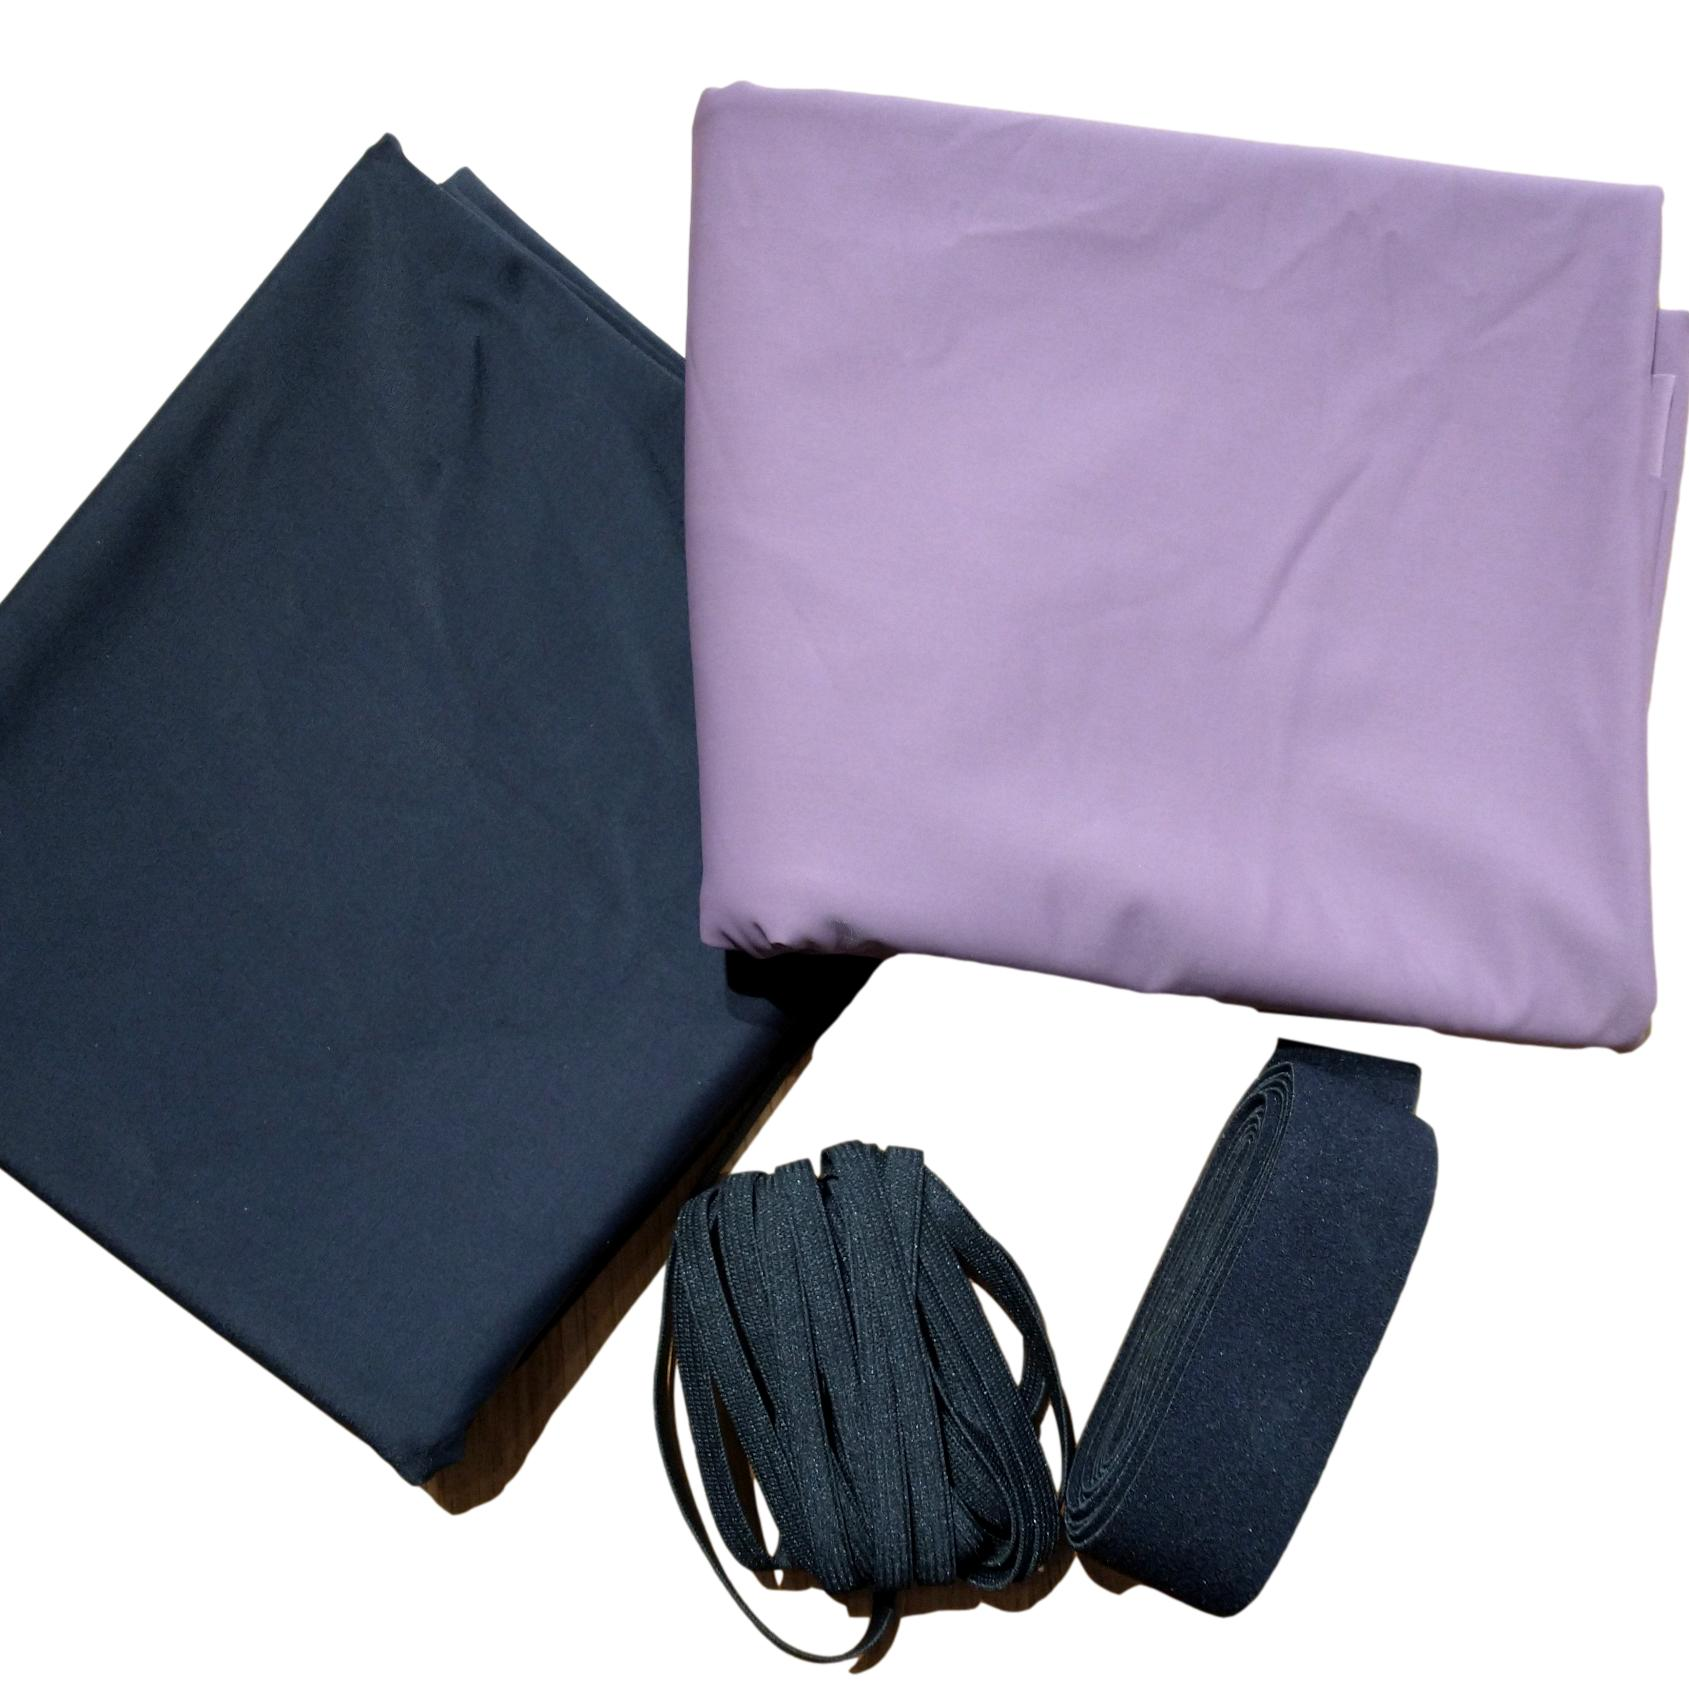 Toasted Mauve Sports Bra Kit